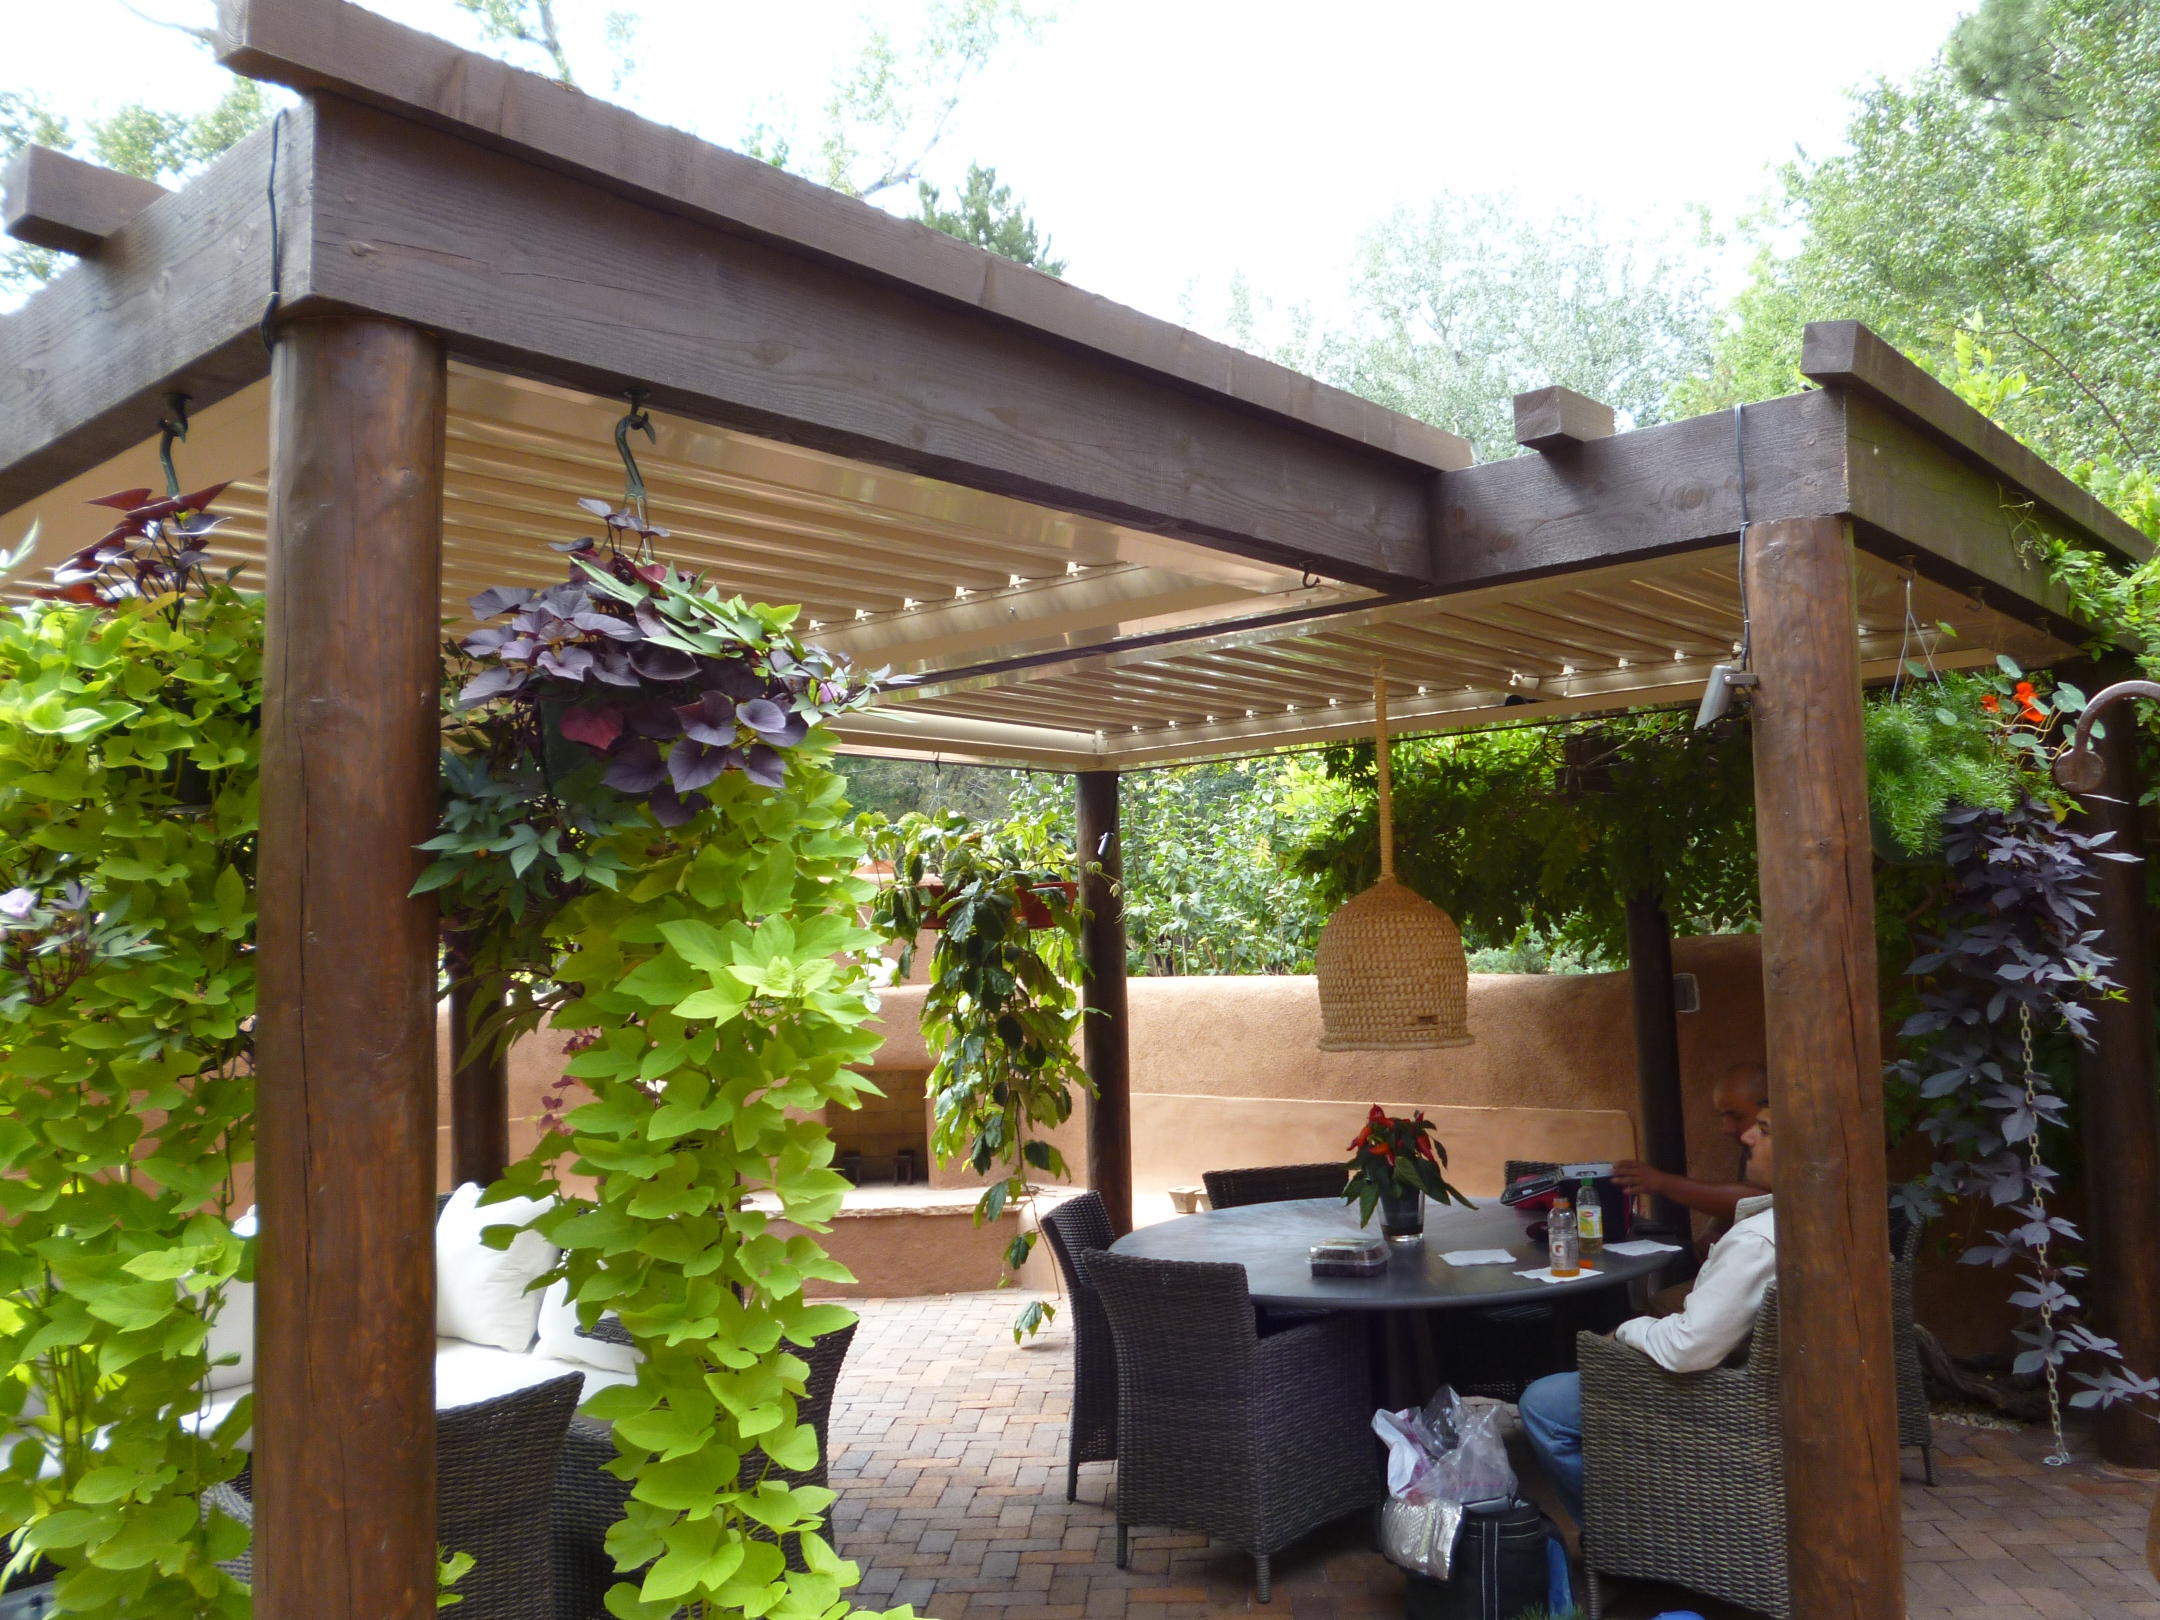 Natural Wooden Patio Covers - HomesFeed on Backyard Patio Cover Ideas  id=67815